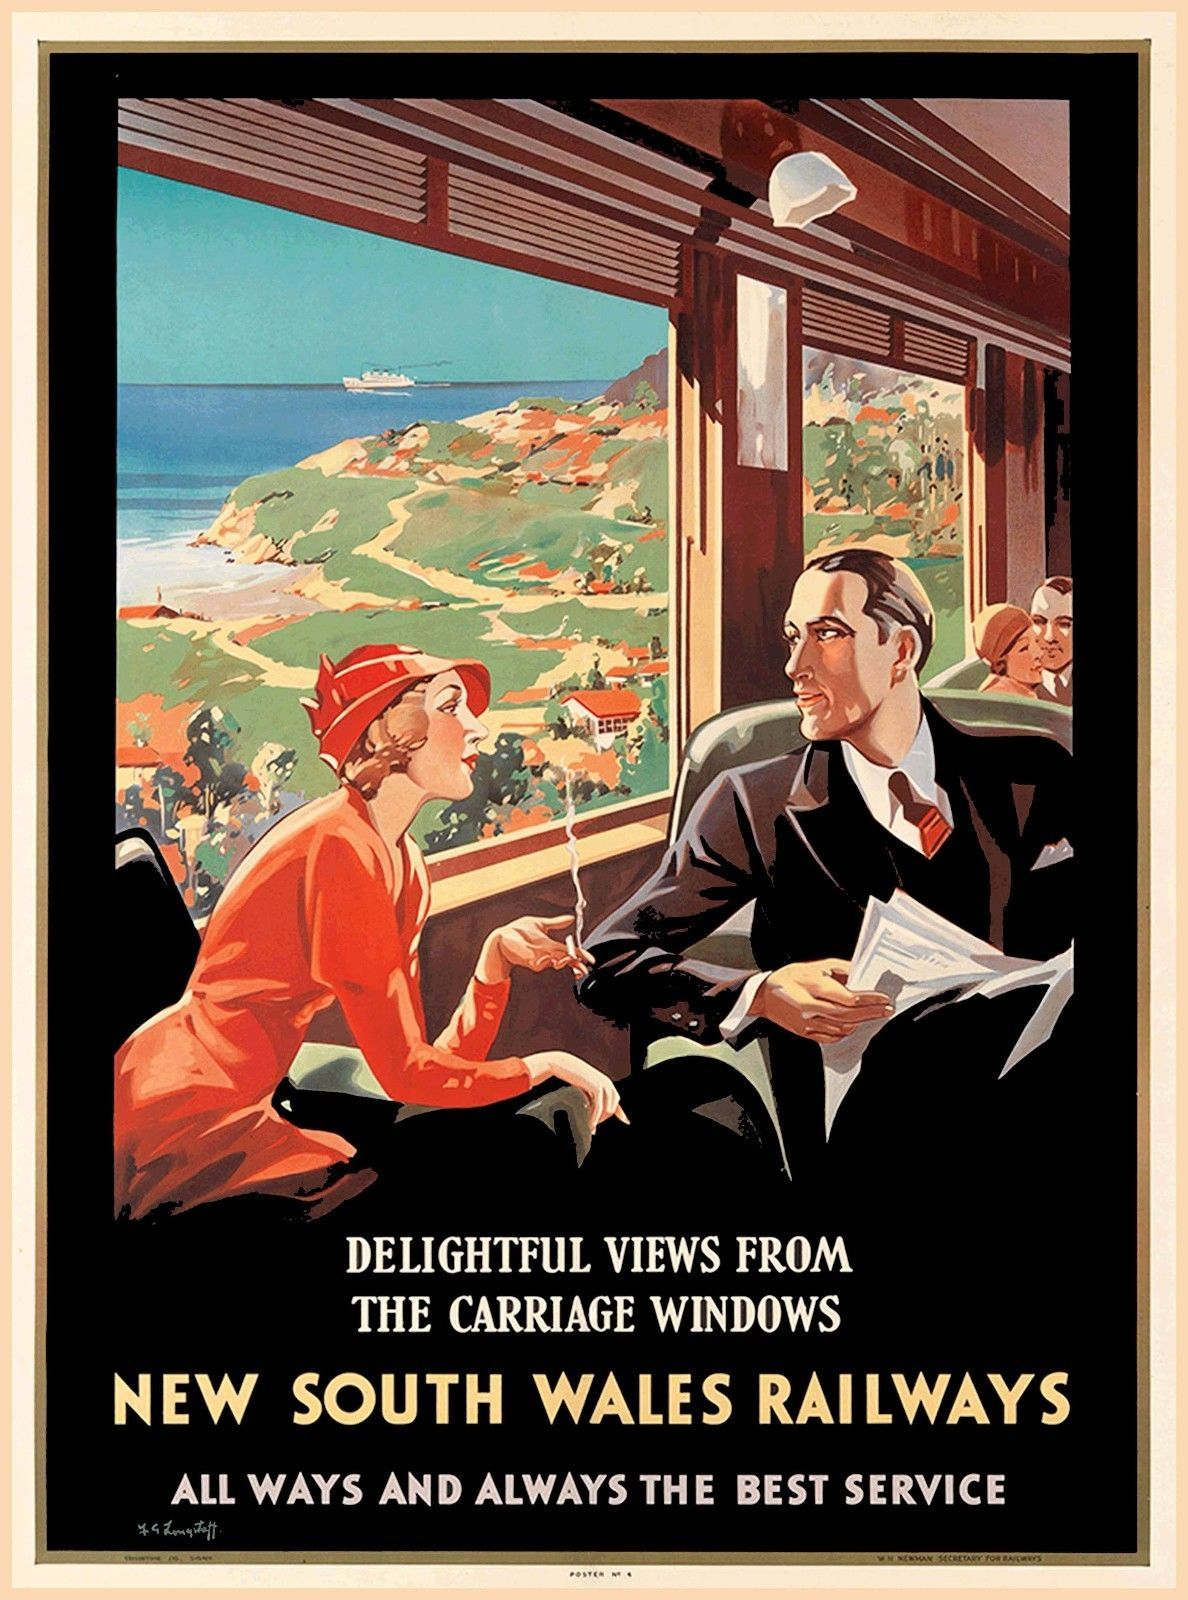 134e50a7f28  7.99 - South Wales Railways Australia Vintage Railroad Travel  Advertisement Poster  ebay  Collectibles